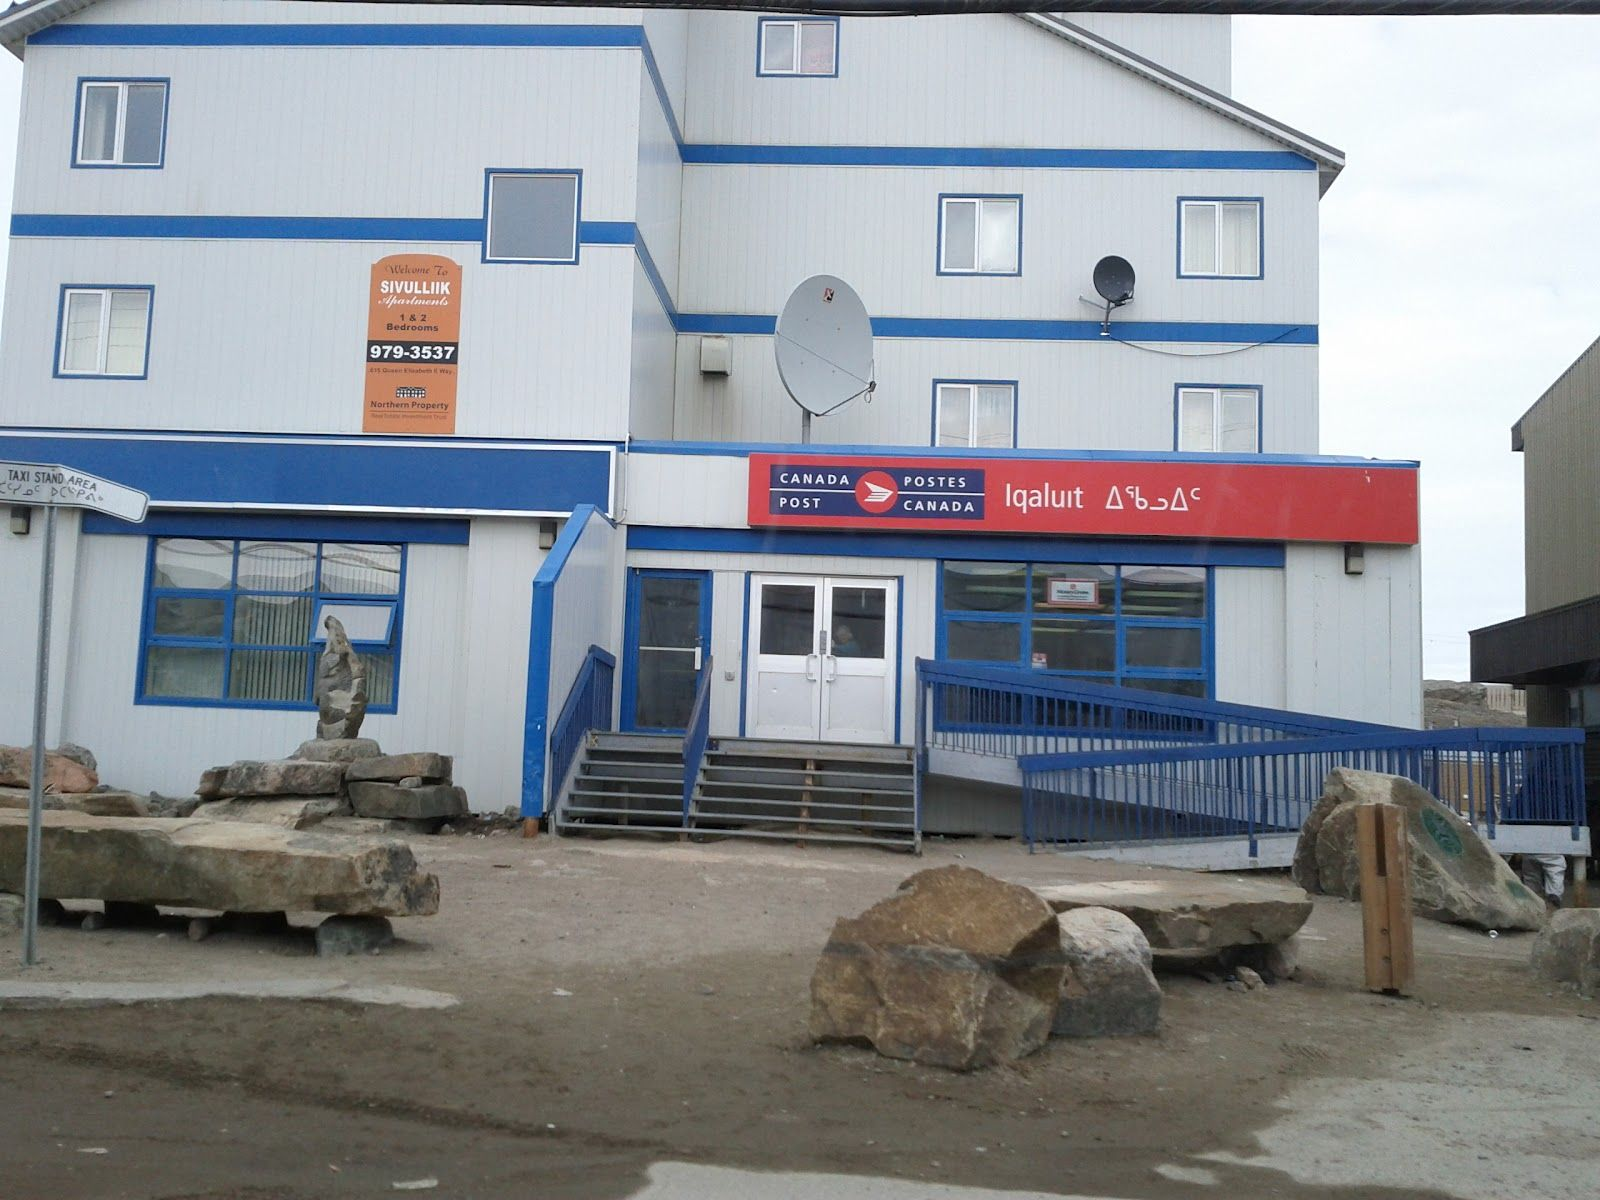 Blog: Iqaluit I never got a good picture of the post office while I was there! check out this blog for more pics of this beautiful town